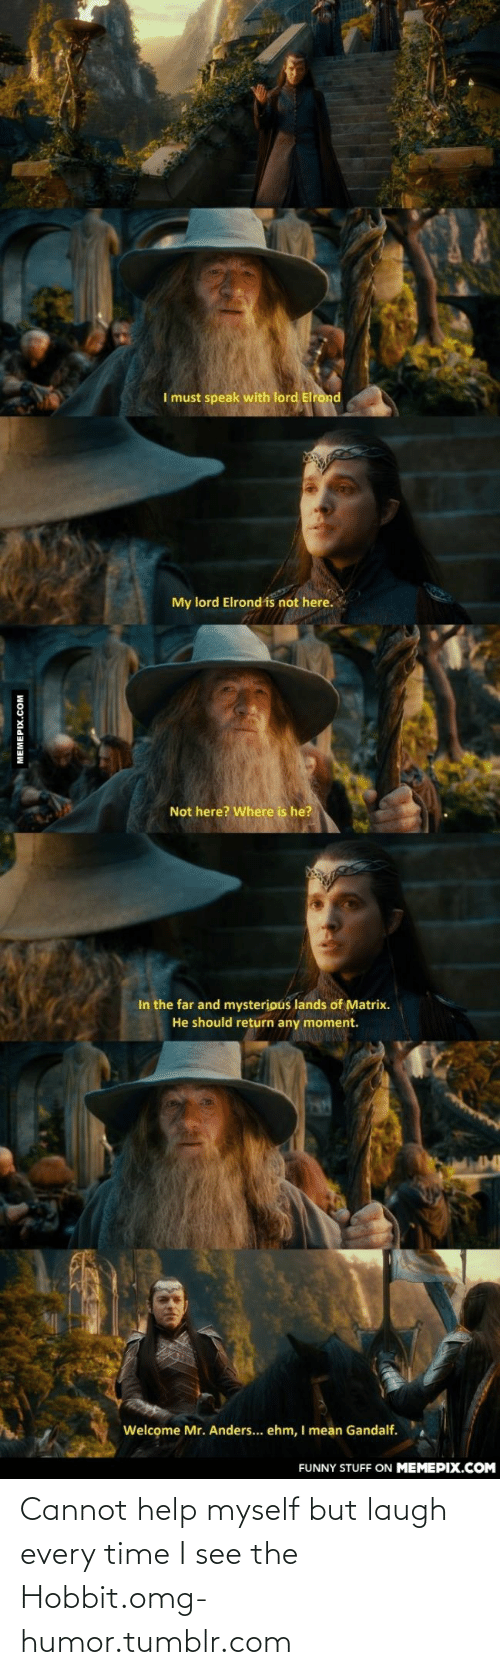 Laugh Every: I must speak with lord Elrond  My lord Elrond is not here.  Not here? Where is he?  In the far and mysterious lands of Matrix.  He should return any moment.  Welcome Mr. Anders... ehm, I mean Gandalf.  FUNNY STUFF ON MEMEPIX.COM  MEMEPIX.COM Cannot help myself but laugh every time I see the Hobbit.omg-humor.tumblr.com